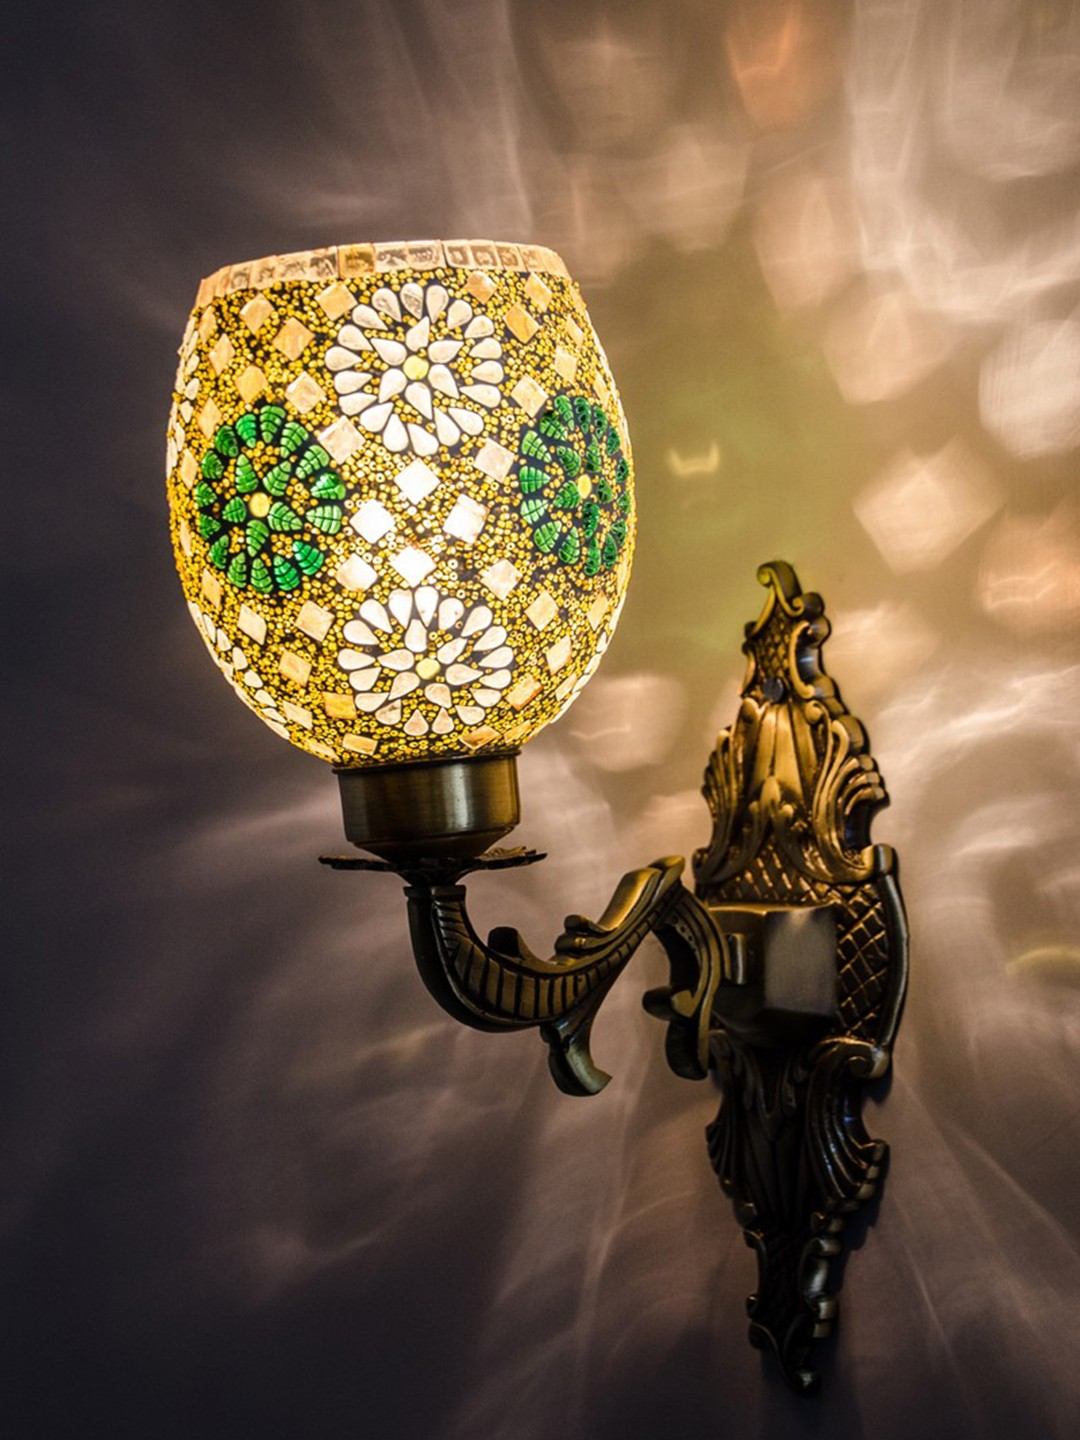 Priyanka Green Shimmer Ornate Single Wall Sconce